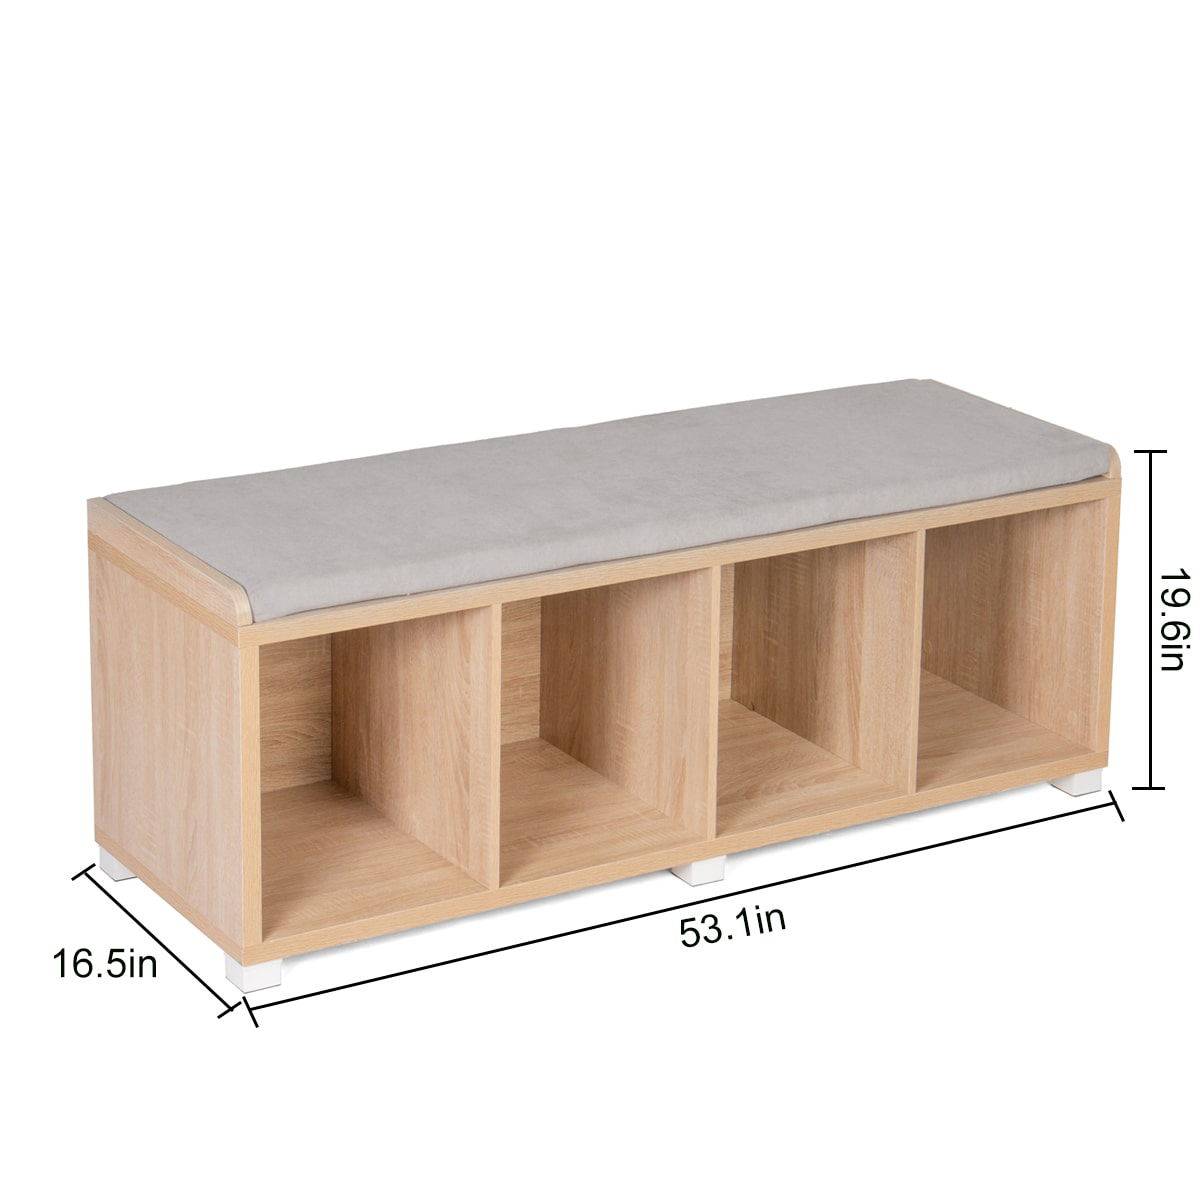 storage bench dimensions